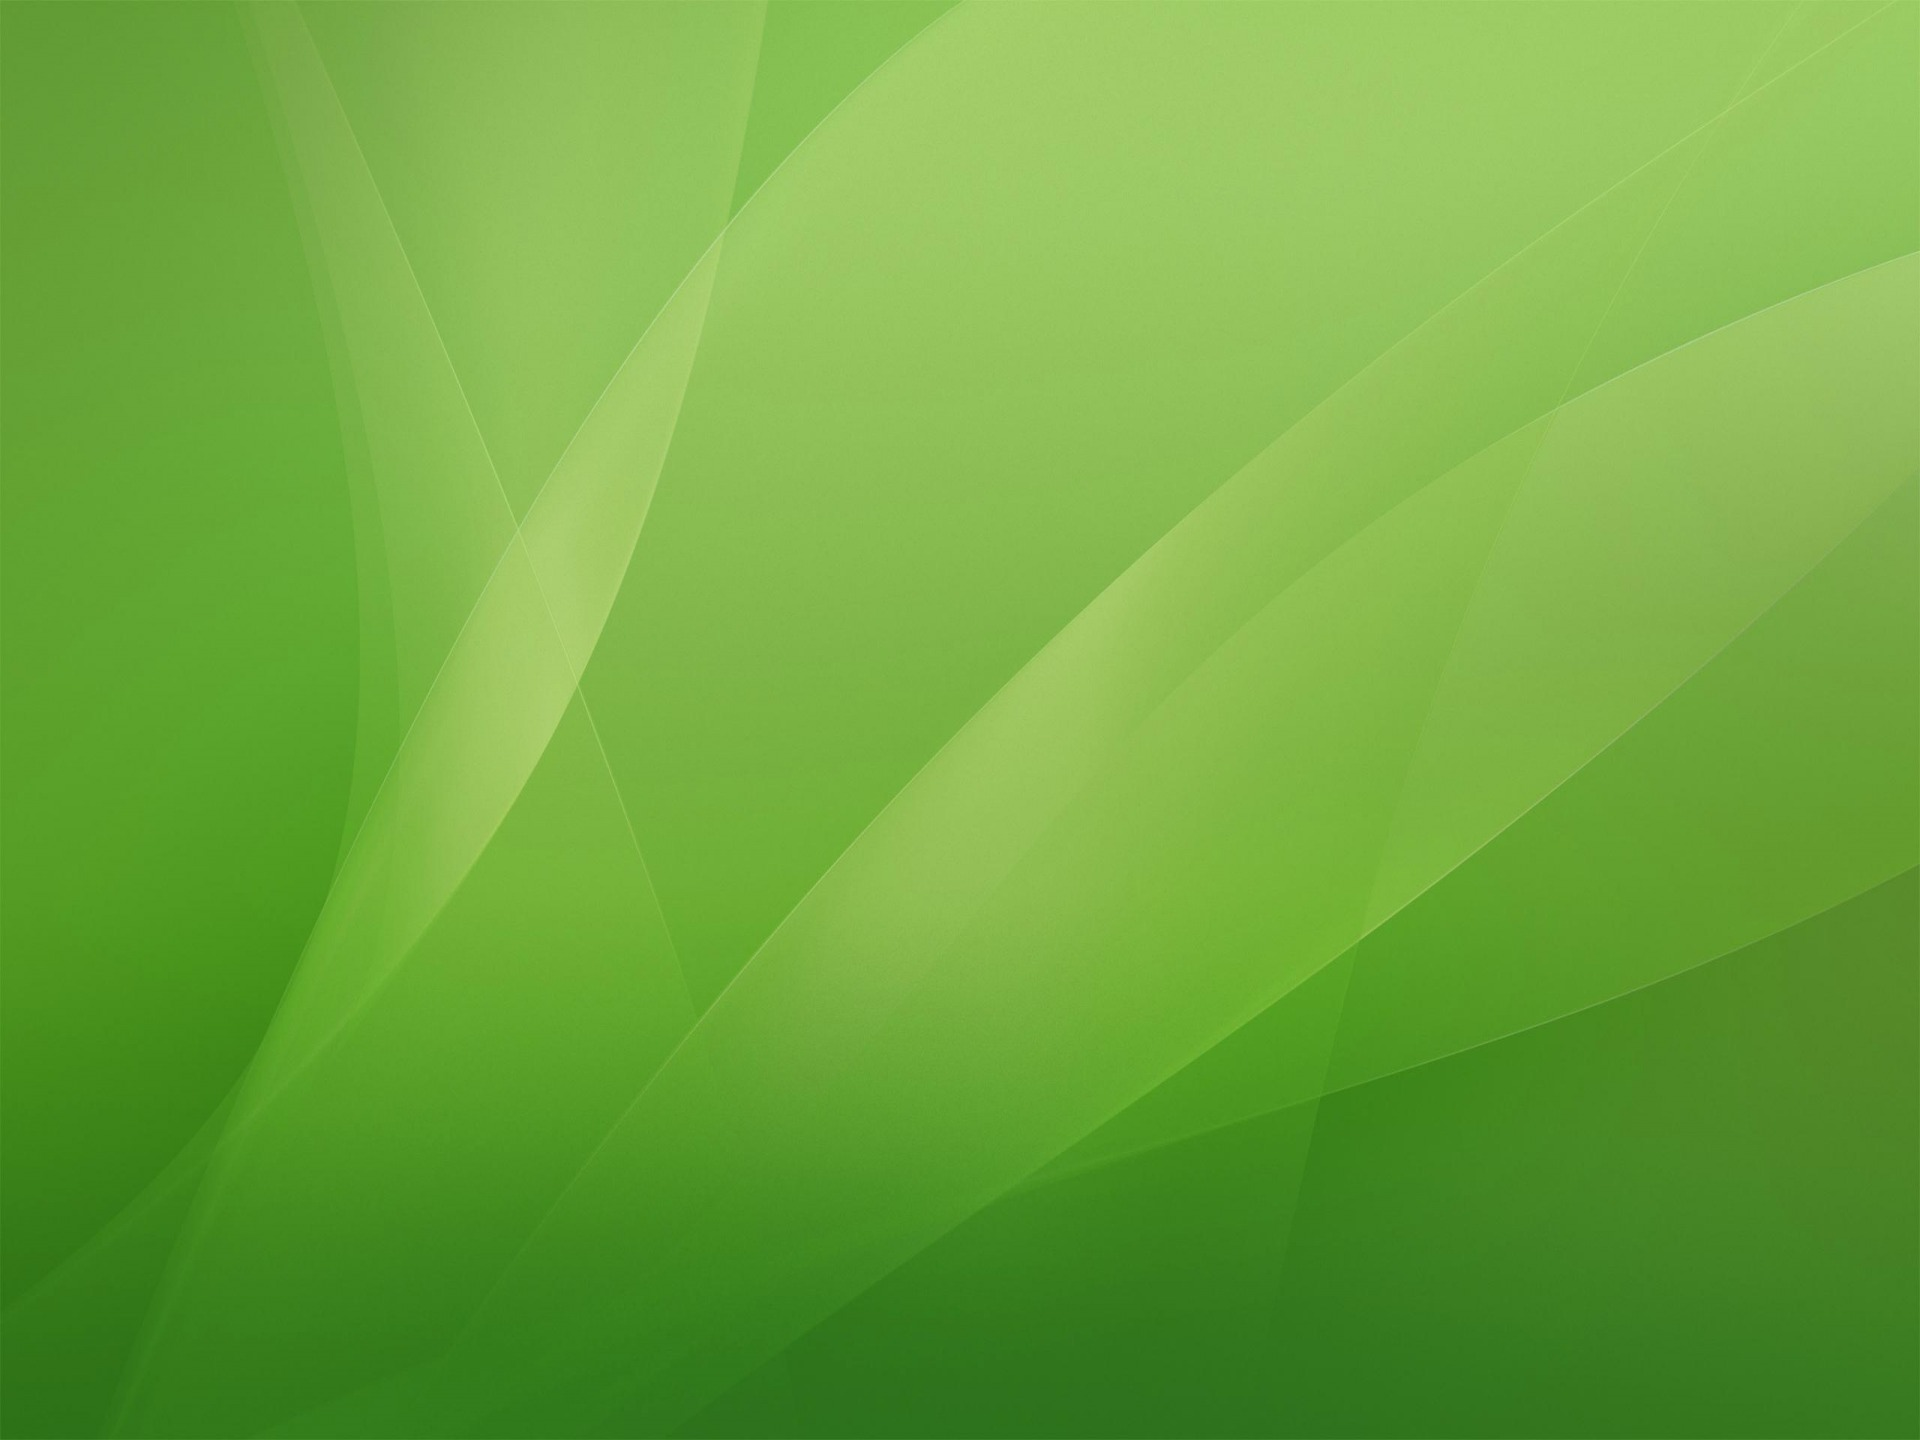 green wallpaper abstract other wallpapers in jpg format